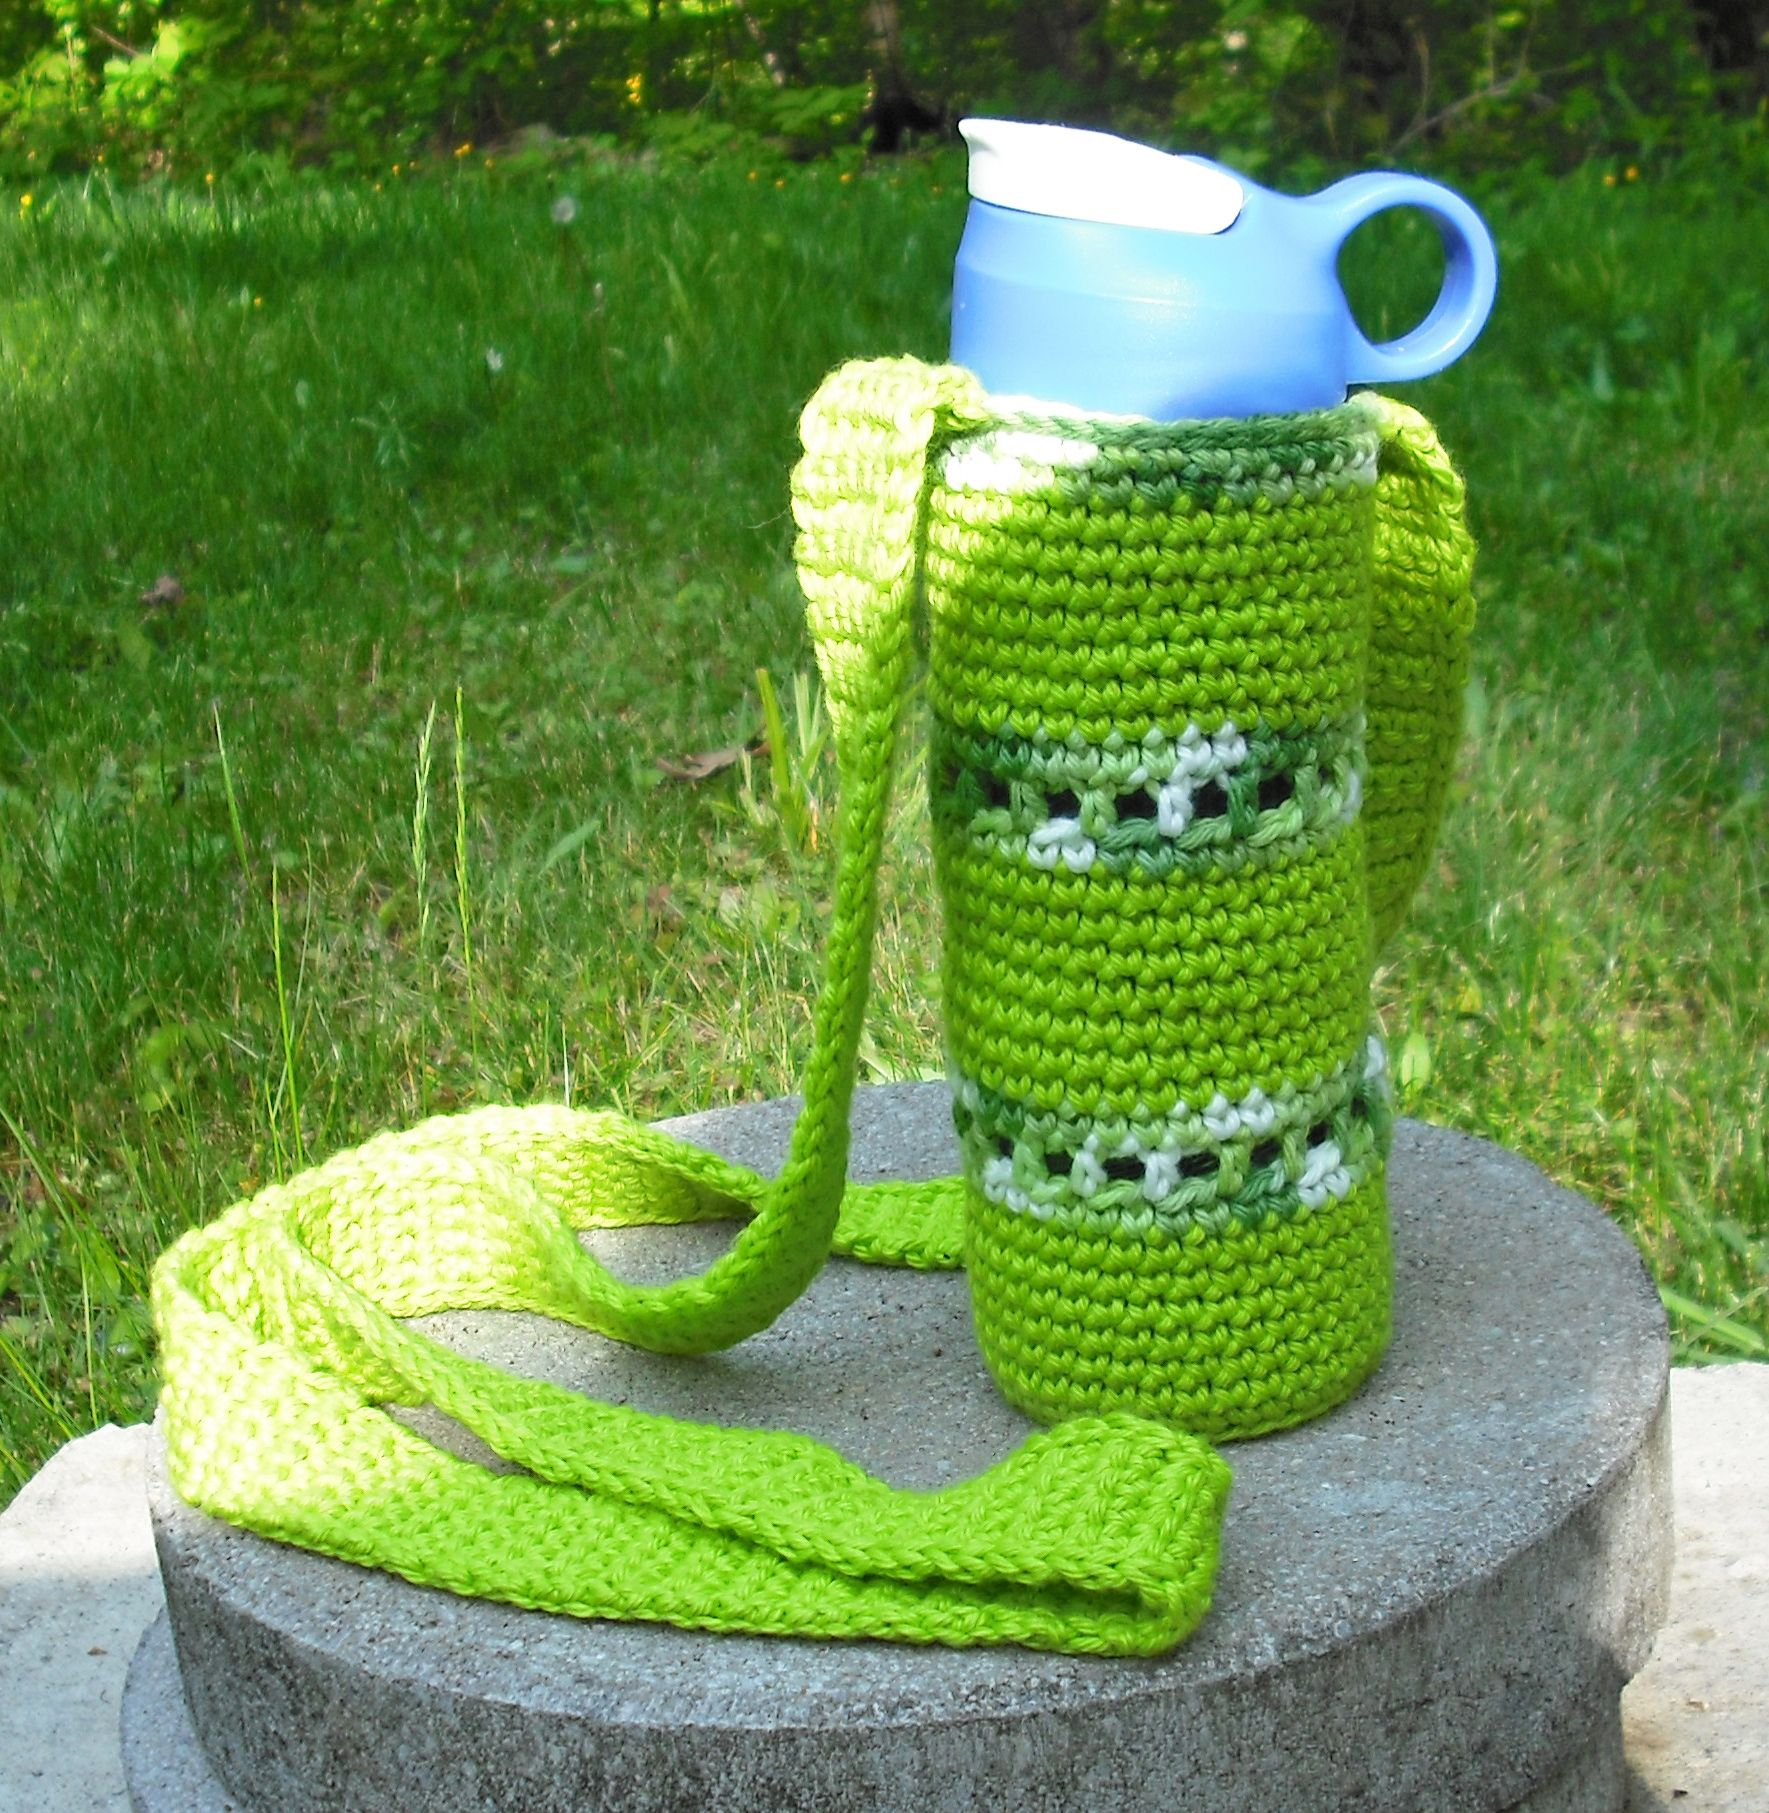 Water bottle holder with cross body strap my own pattern water bottle holder with cross body strap my own pattern bankloansurffo Choice Image